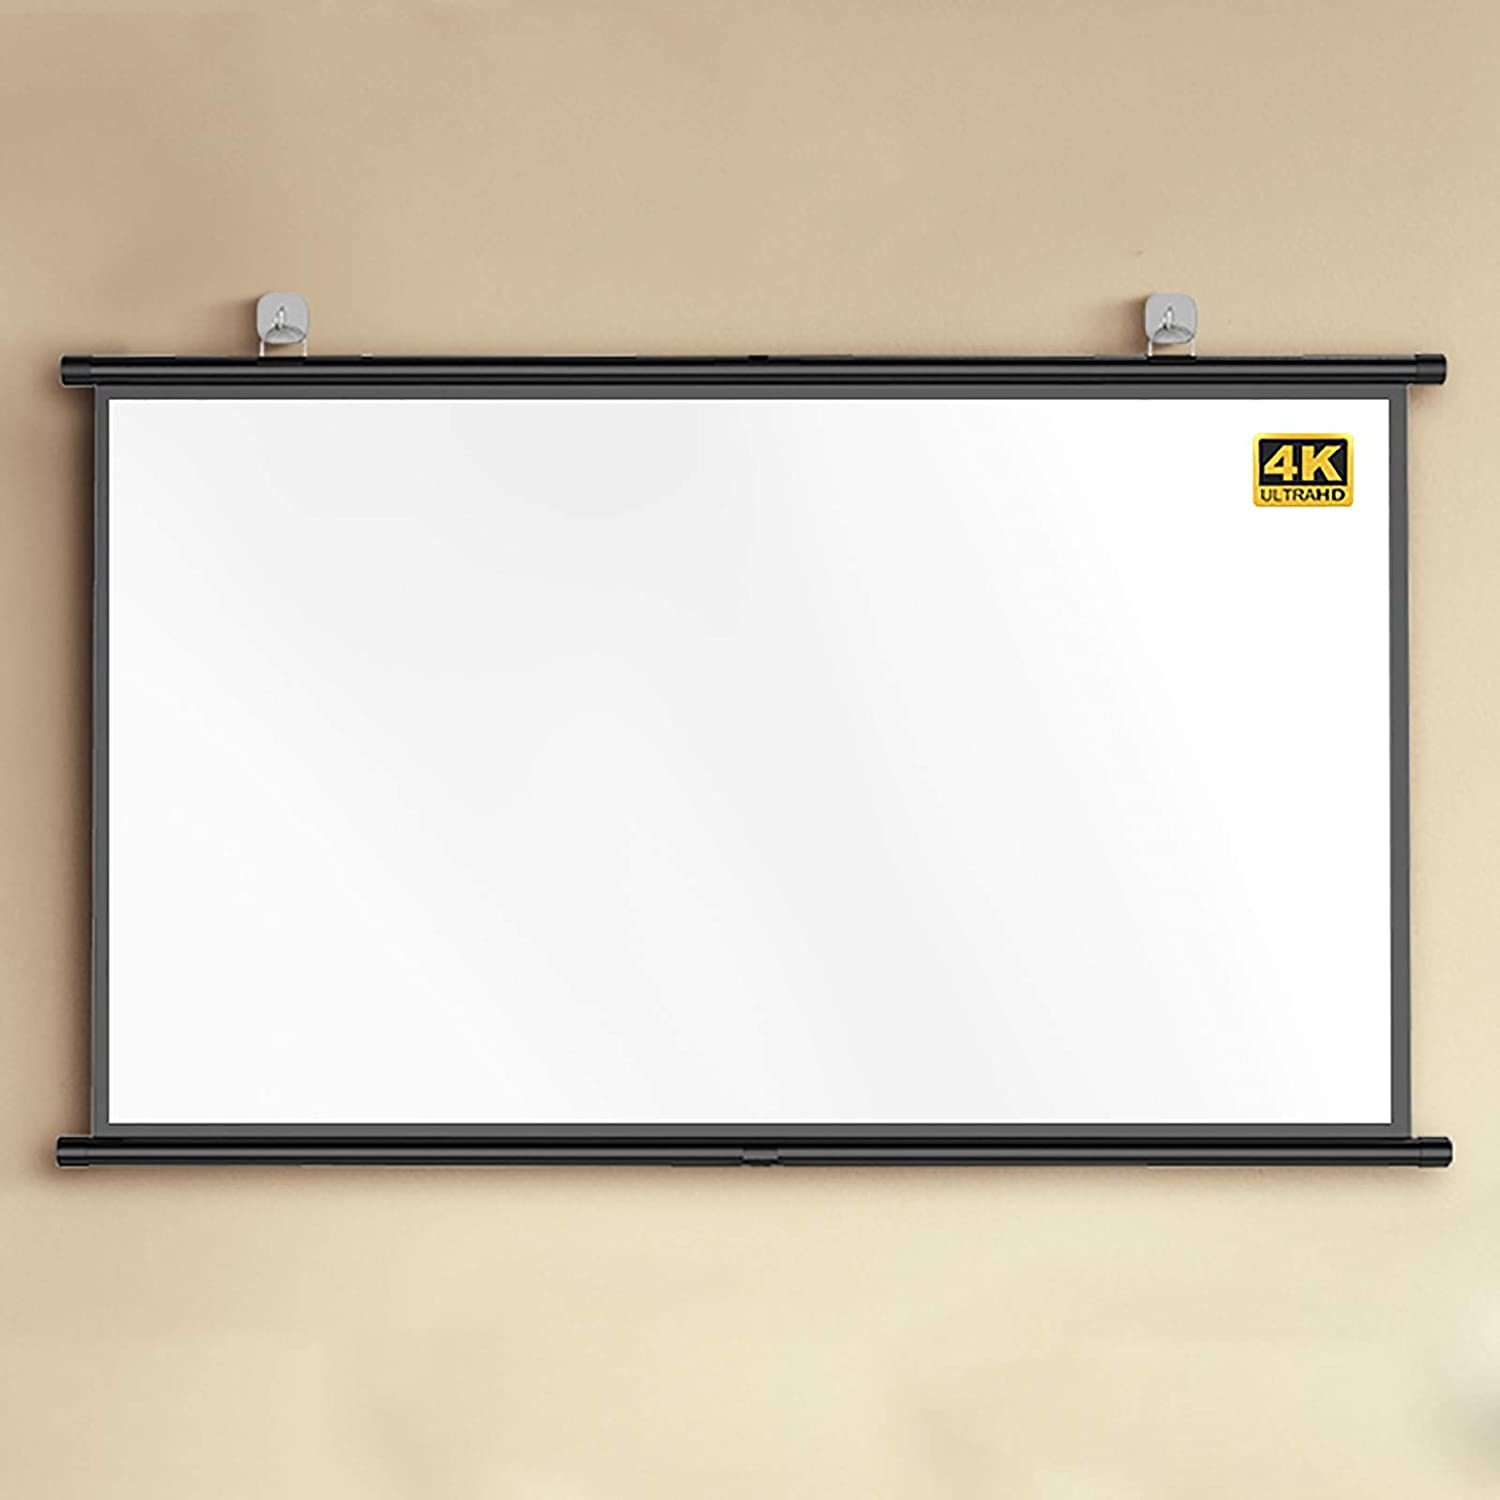 YFF-Corrimano Projector Screen, 4:3/16:9 Ratio, Home Simple Strip Wall-Mounted High-Definition Projection Screen, Used for Movies   Home Projector